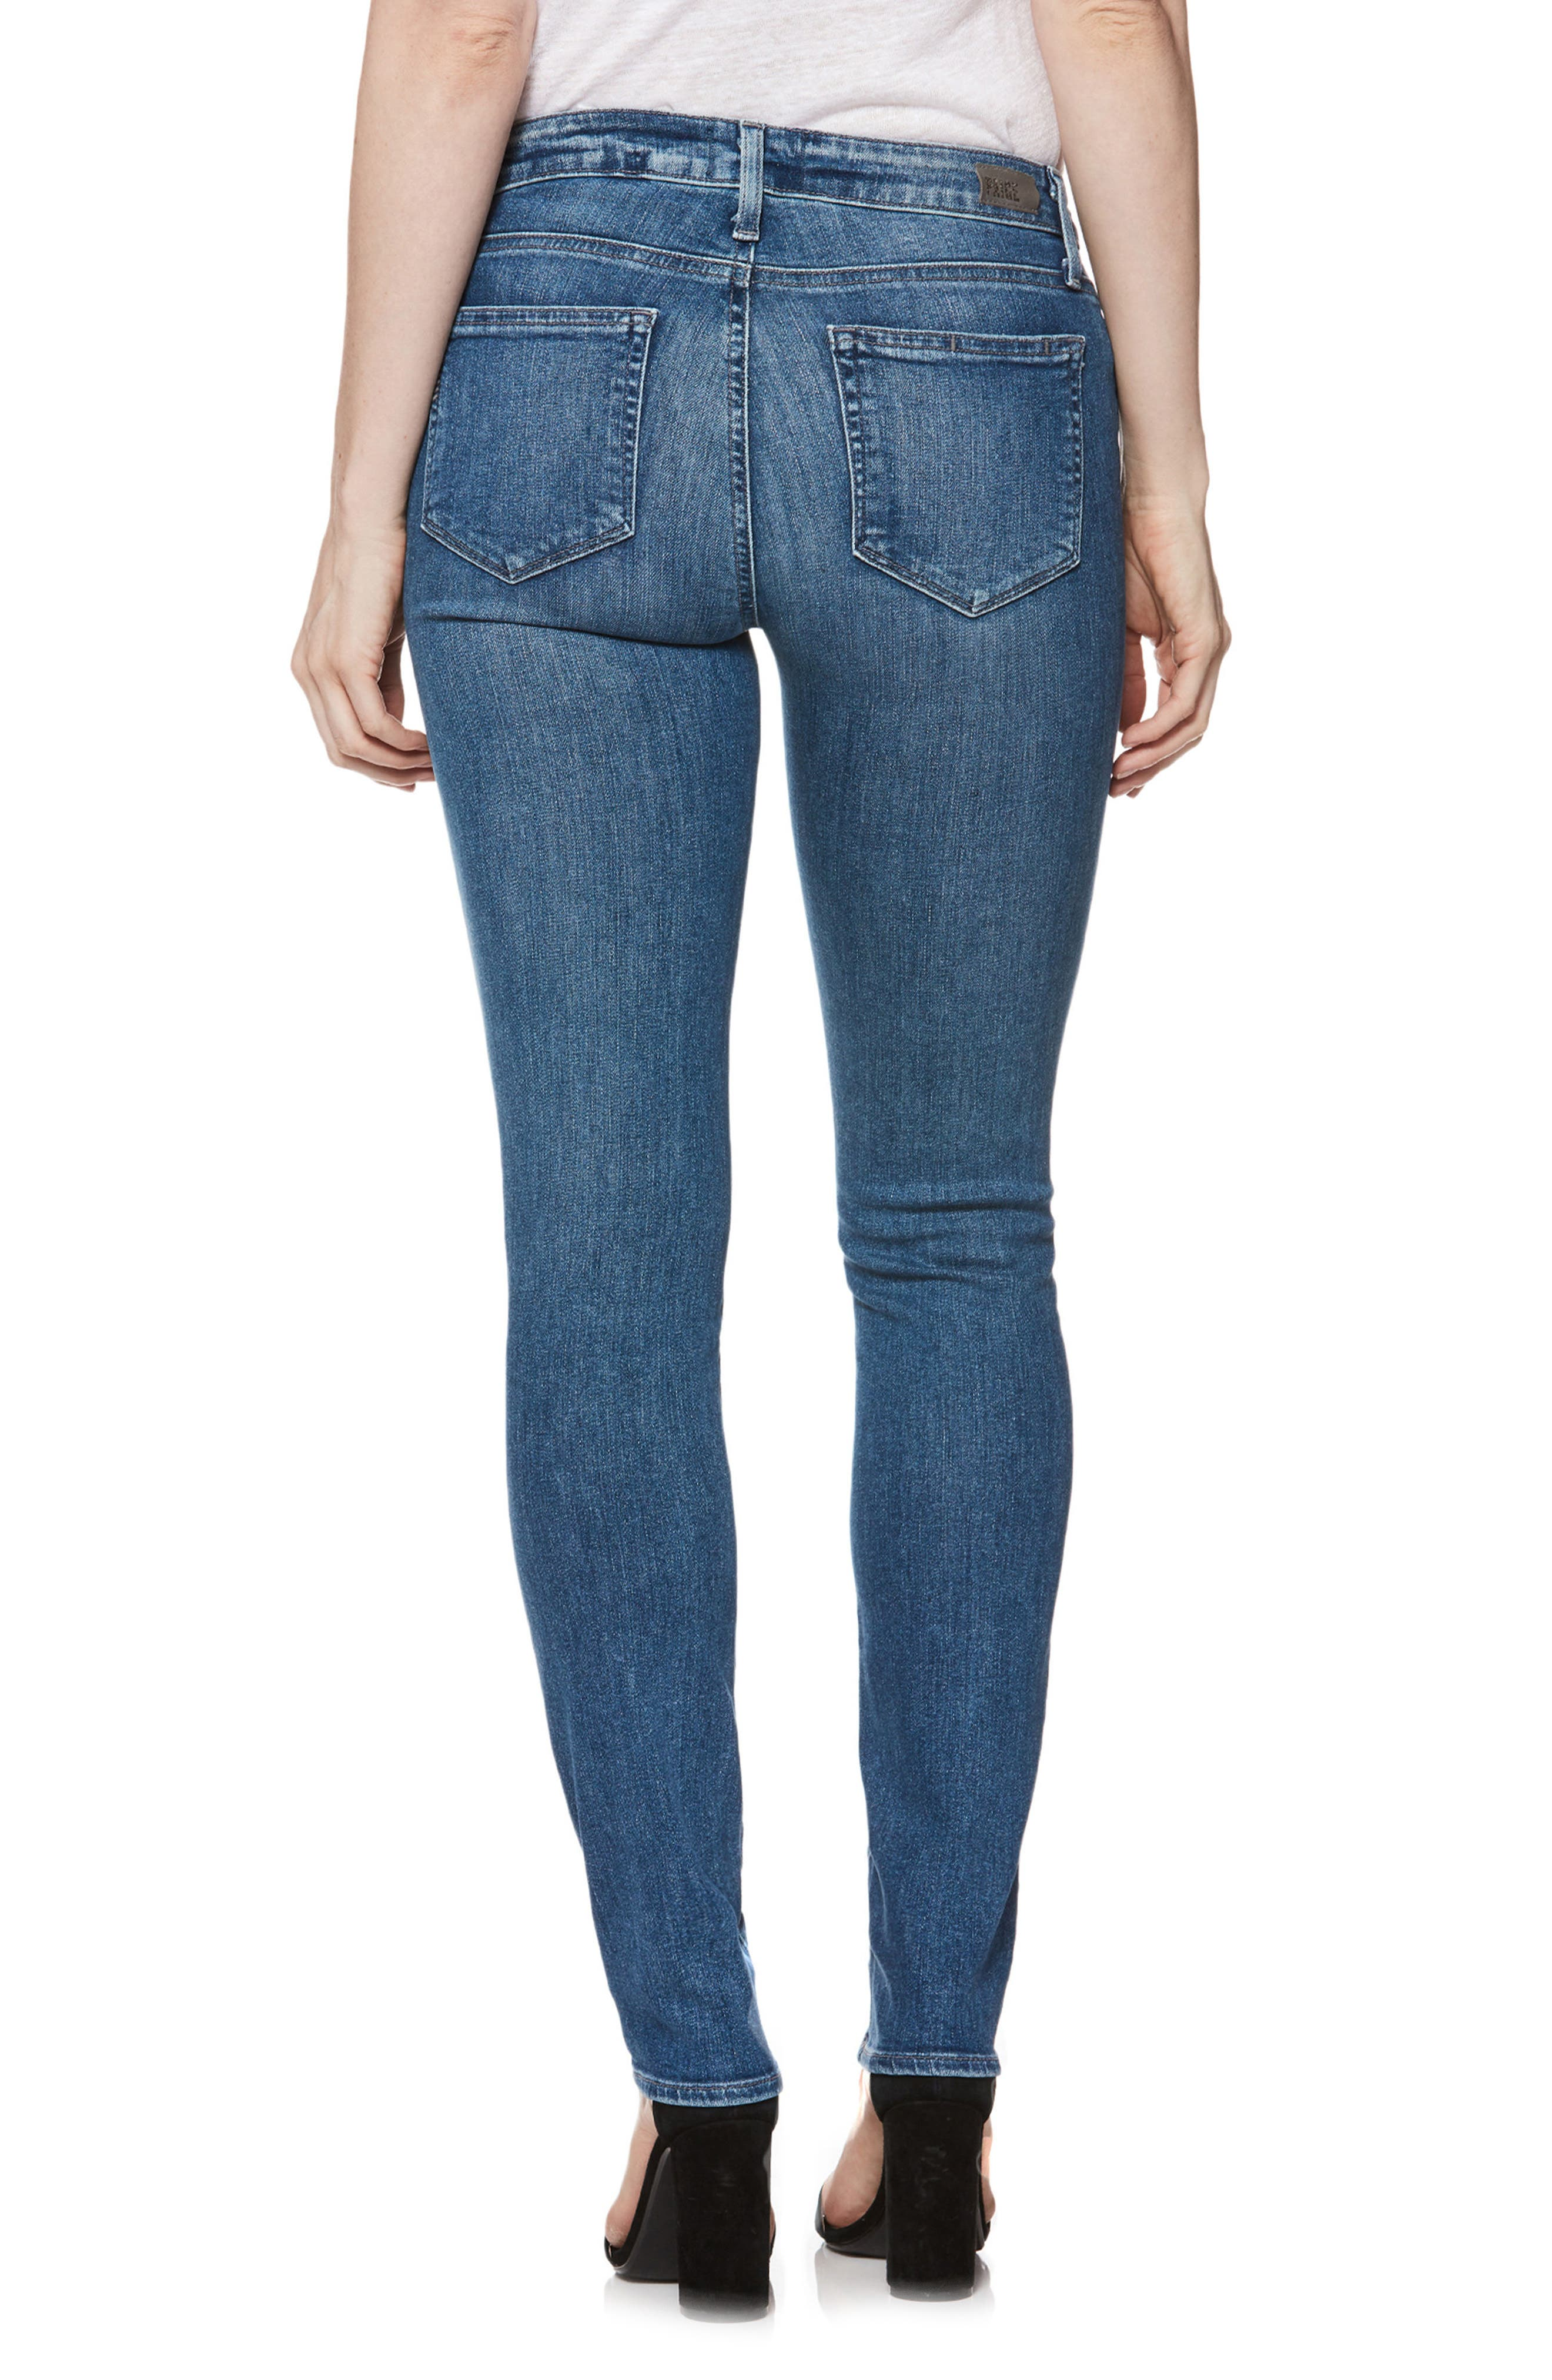 Transcend Vintage - Skyline Skinny Jeans,                             Alternate thumbnail 2, color,                             400